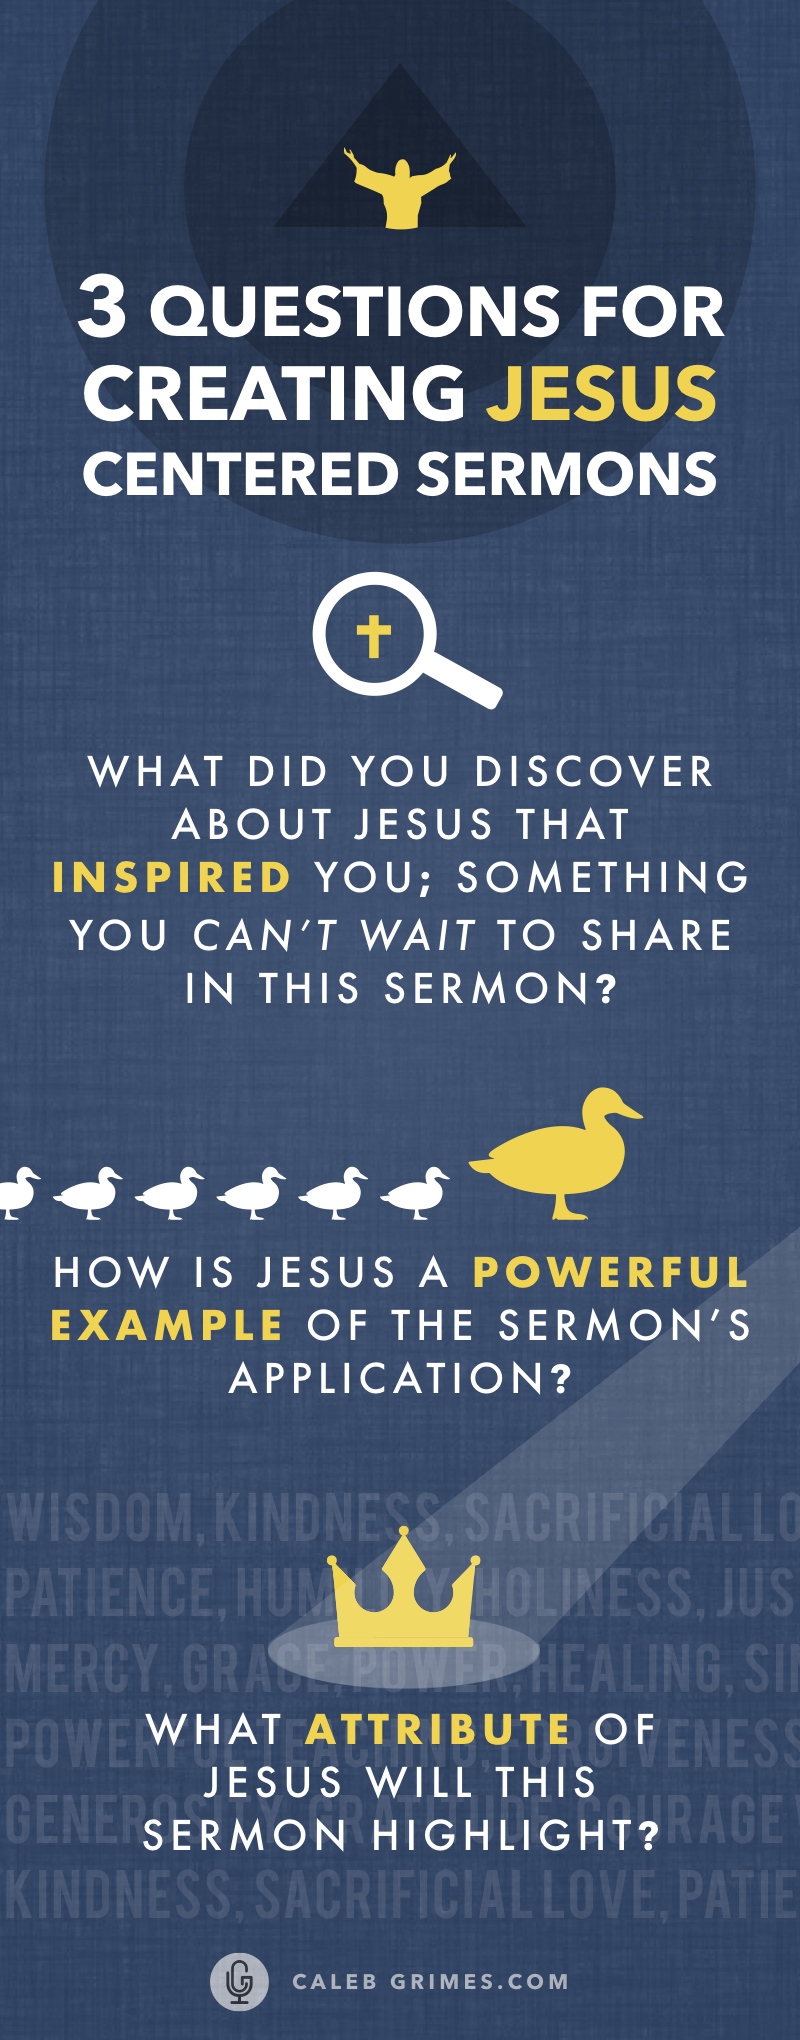 3 Questions for creating Jesus centered sermons.001.jpeg